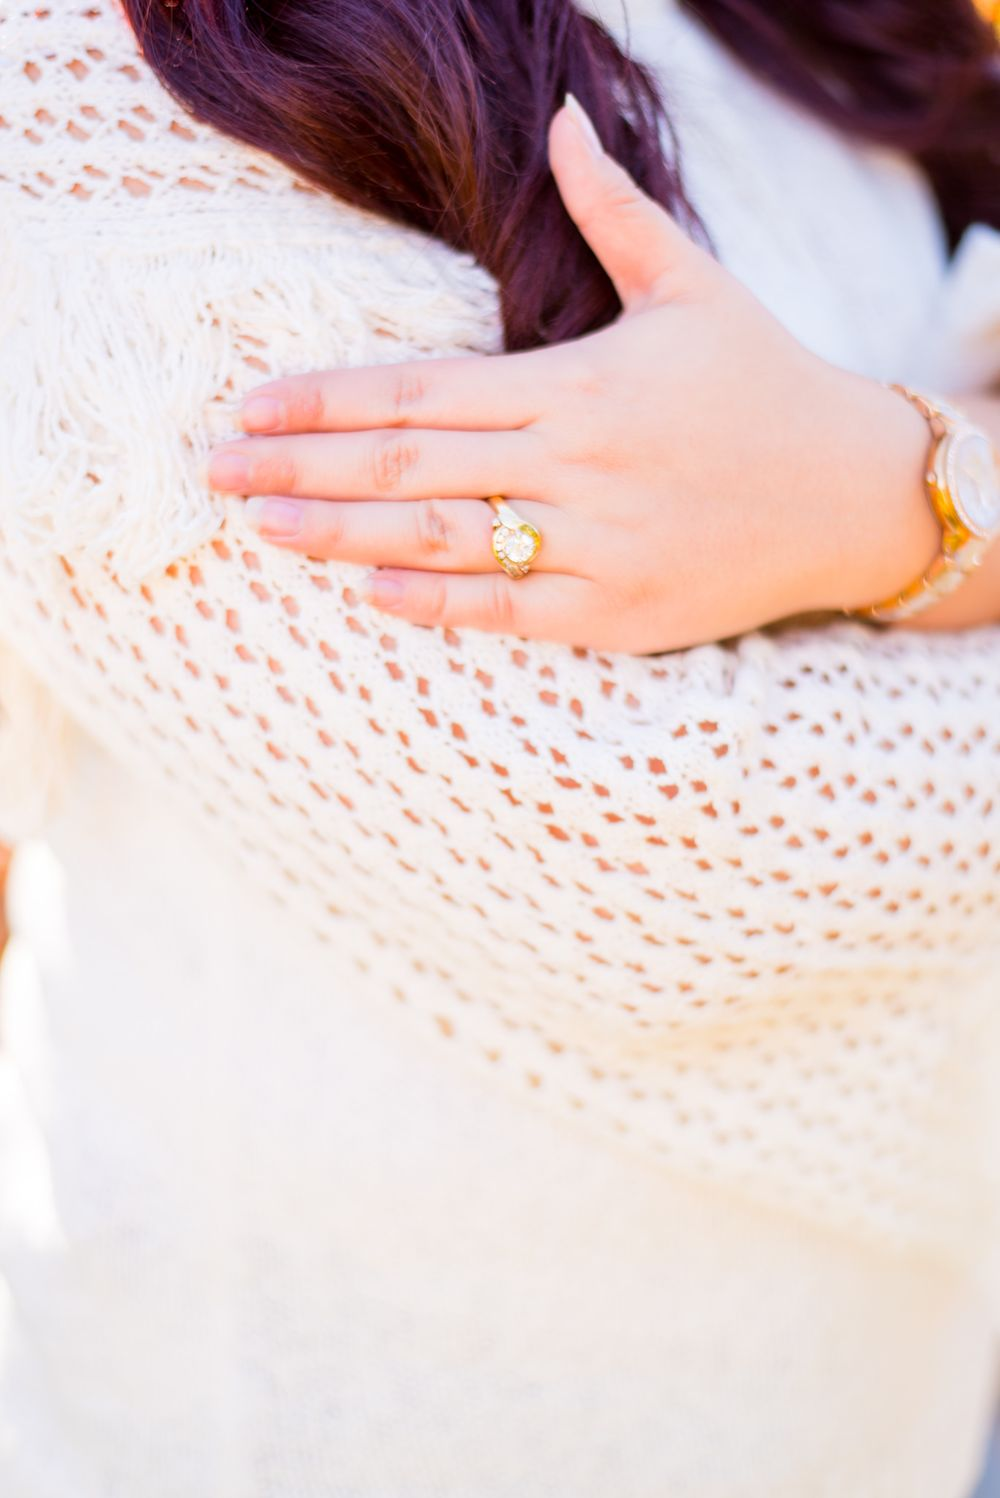 woman's hand with an engagement ring touching her arm in a white knitted sweater